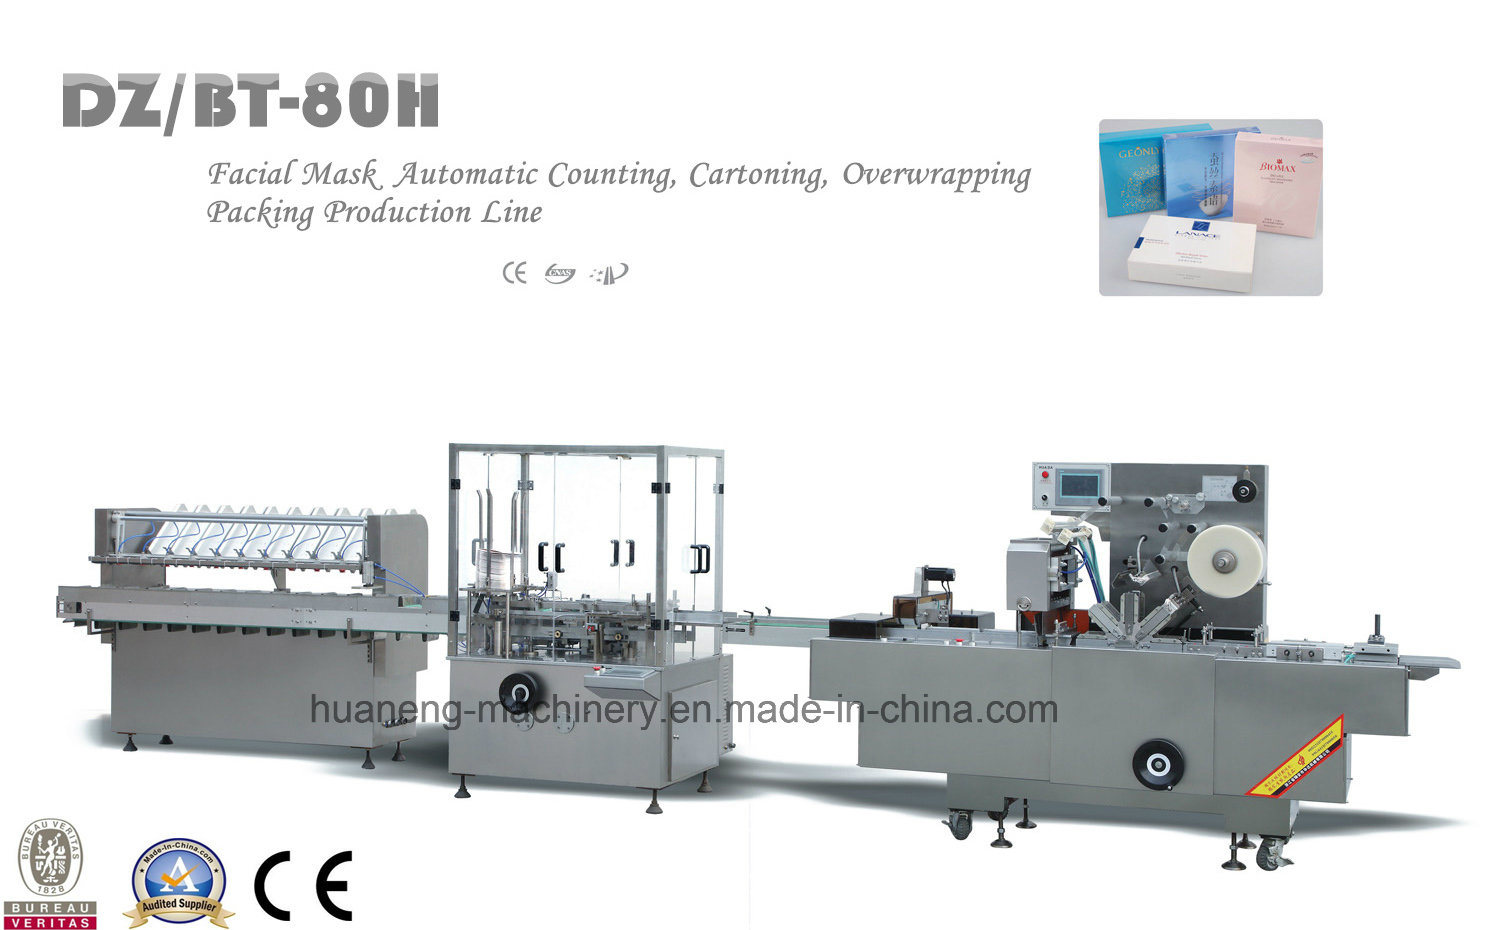 Automatic Facial Mask Packing Production Line Dz/Bt-80h